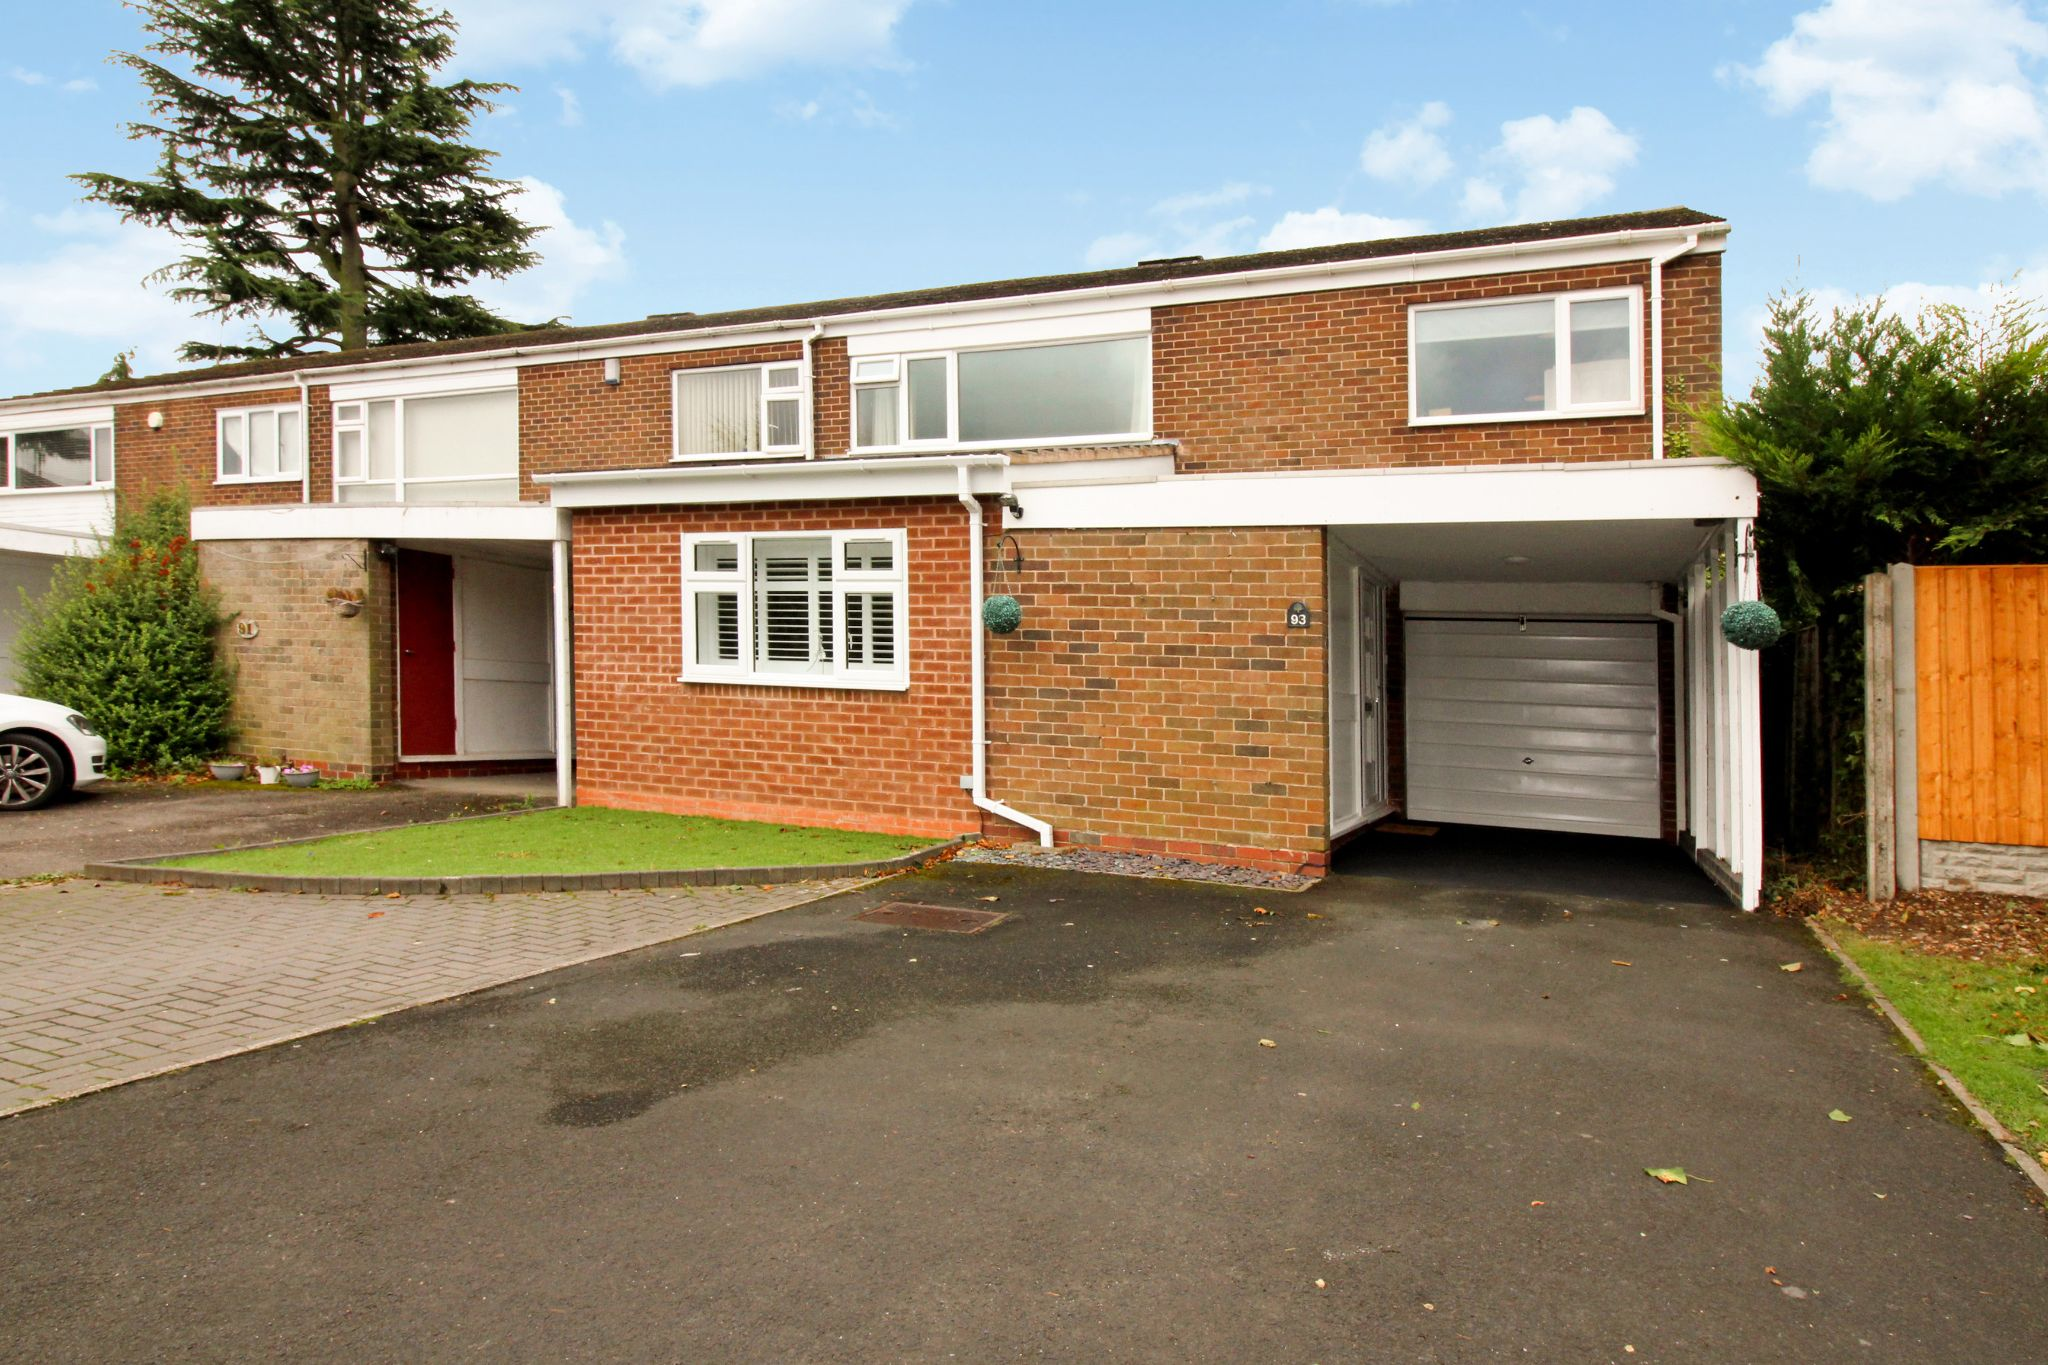 4 bedroom semi-detached house SSTC in Solihull - Photograph 15.